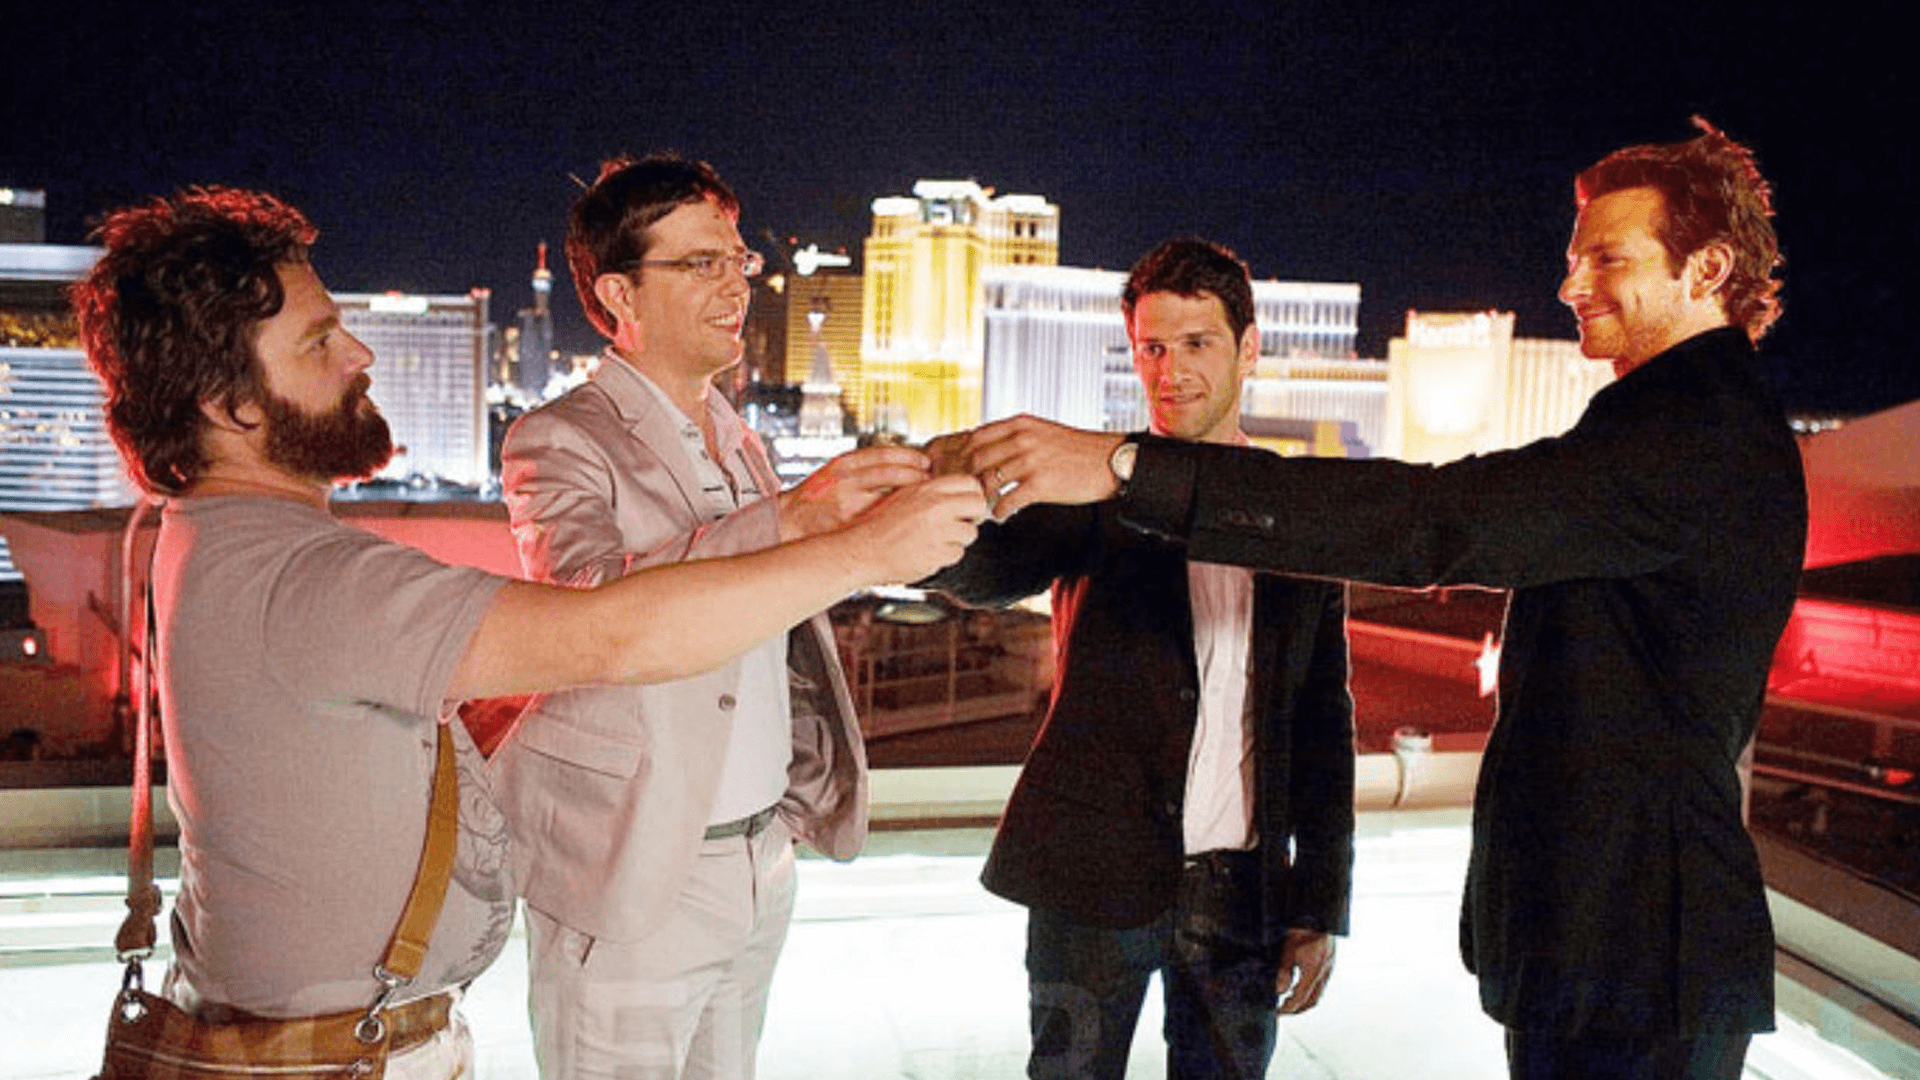 Alan making toast on rooftop of the hotel in Las Vegas that will lead to hangover.